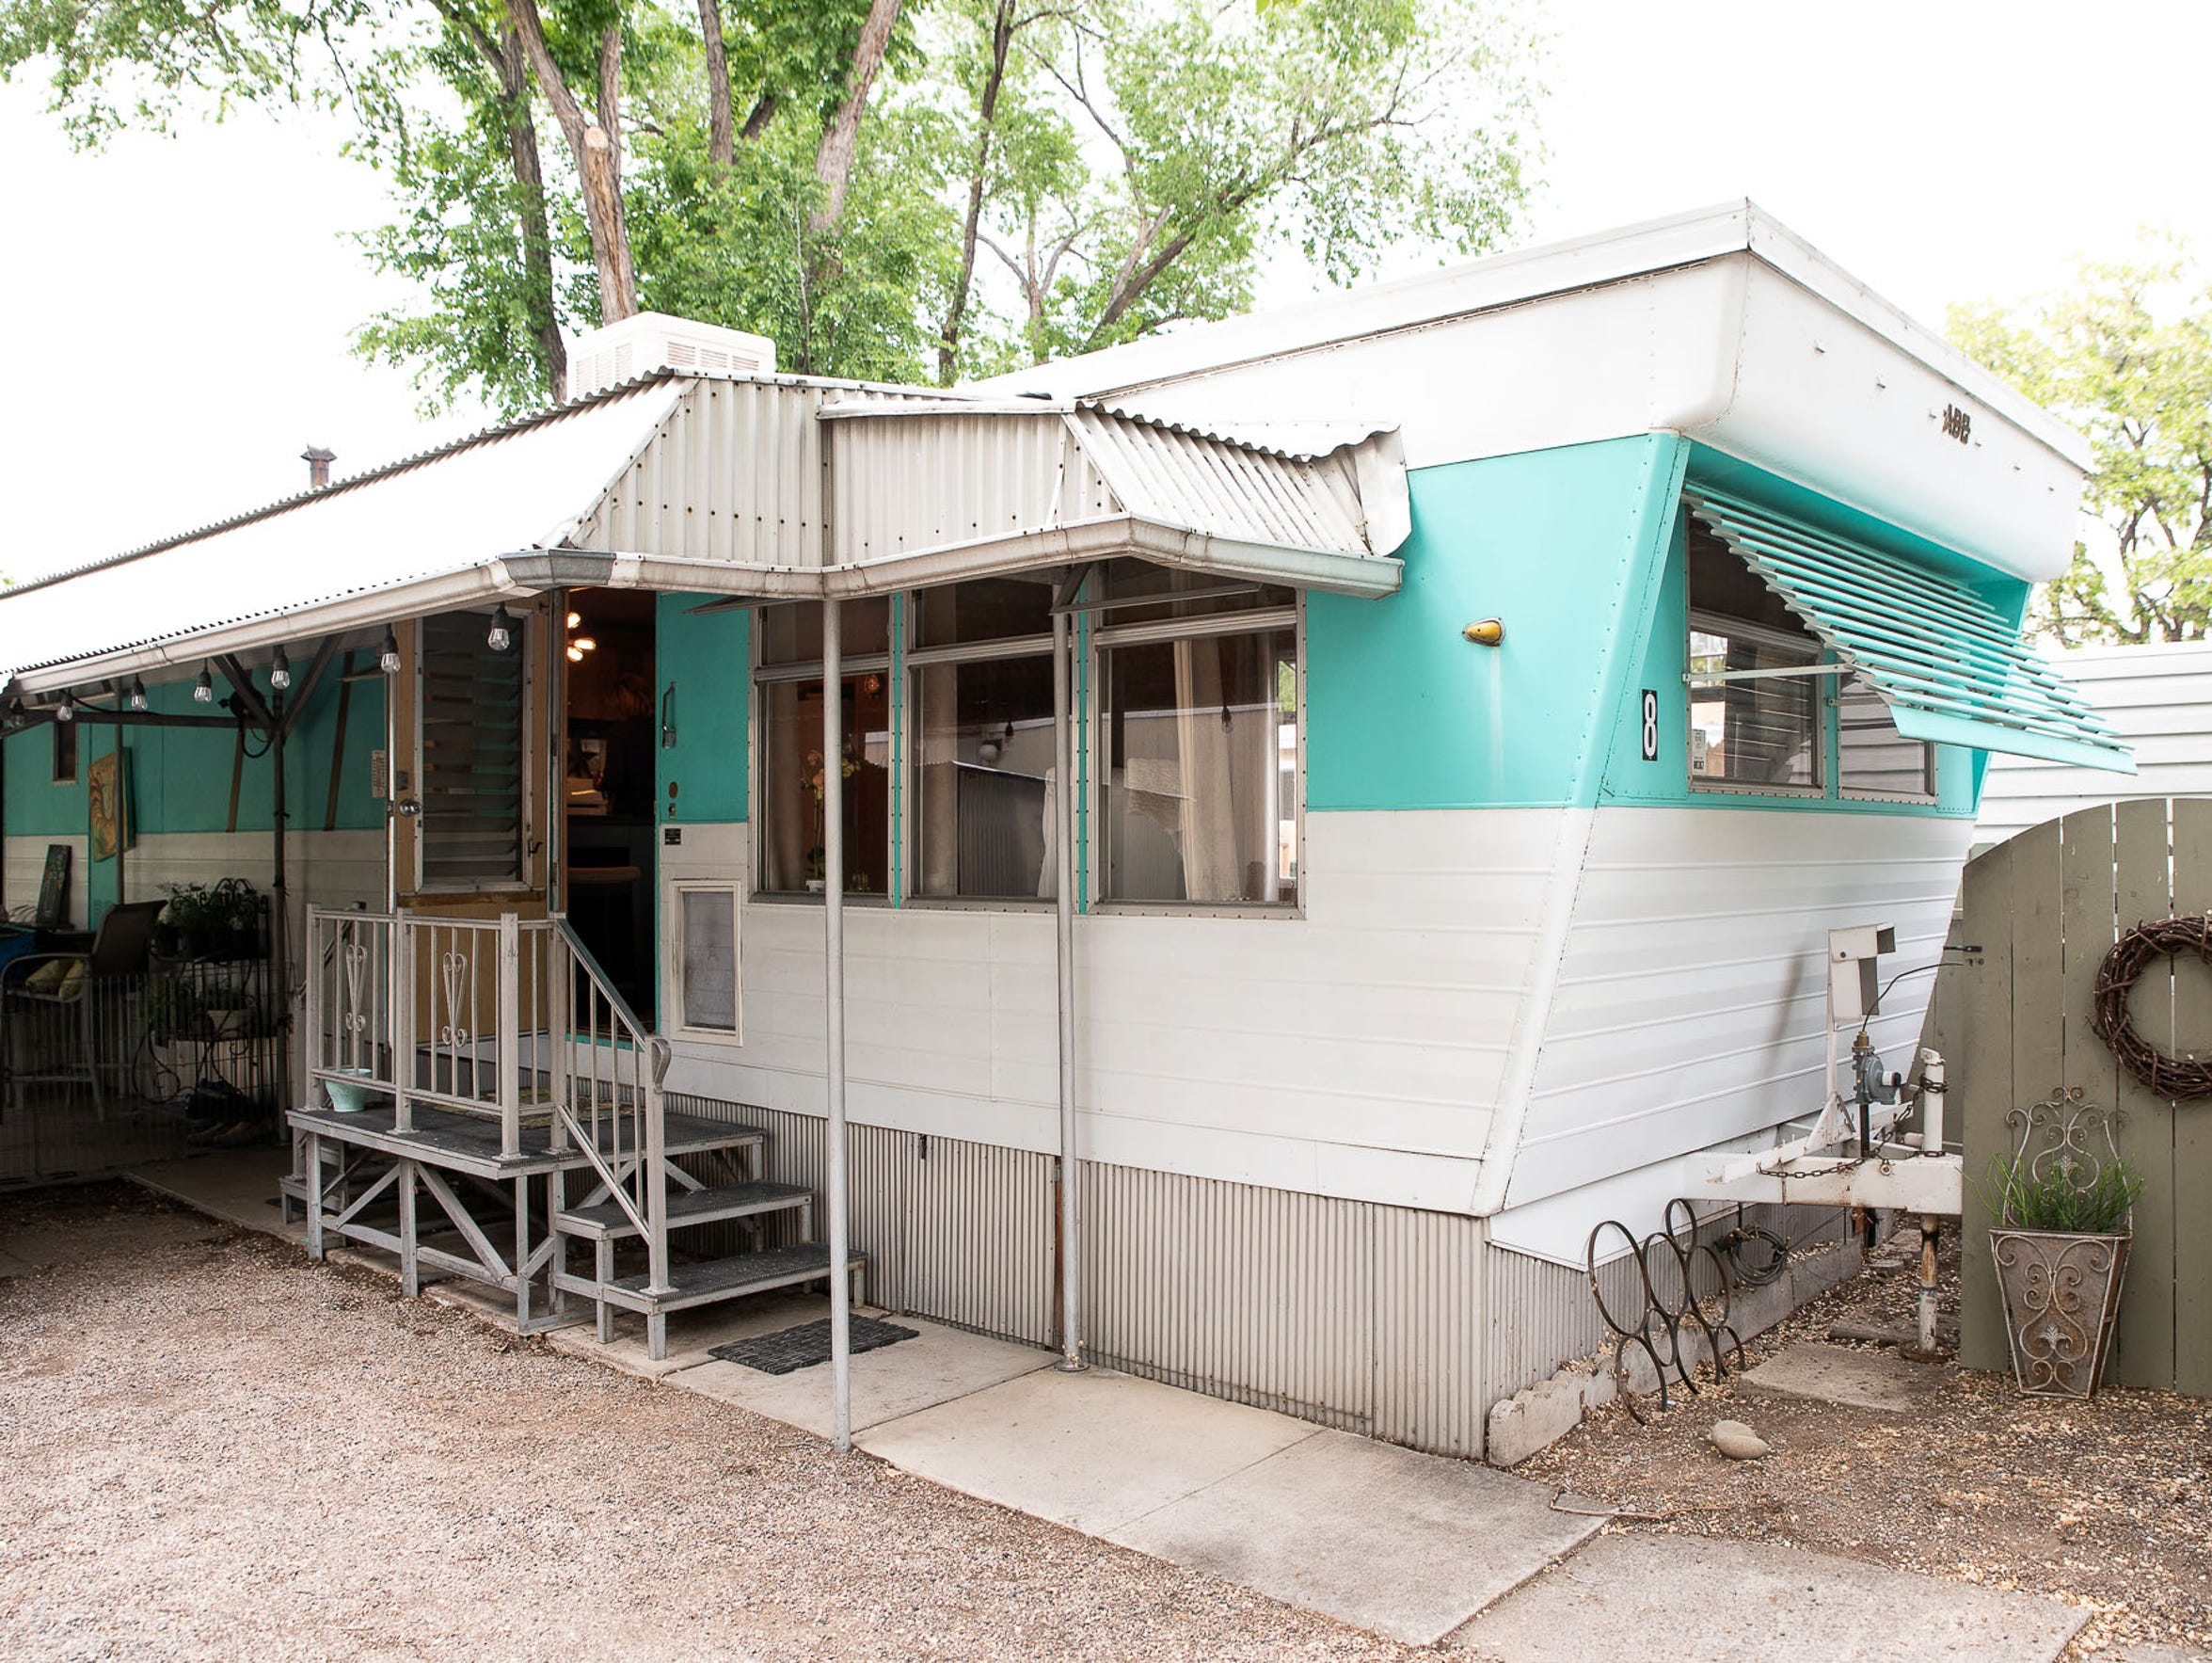 The exterior of a 1959 vintage trailer at River West